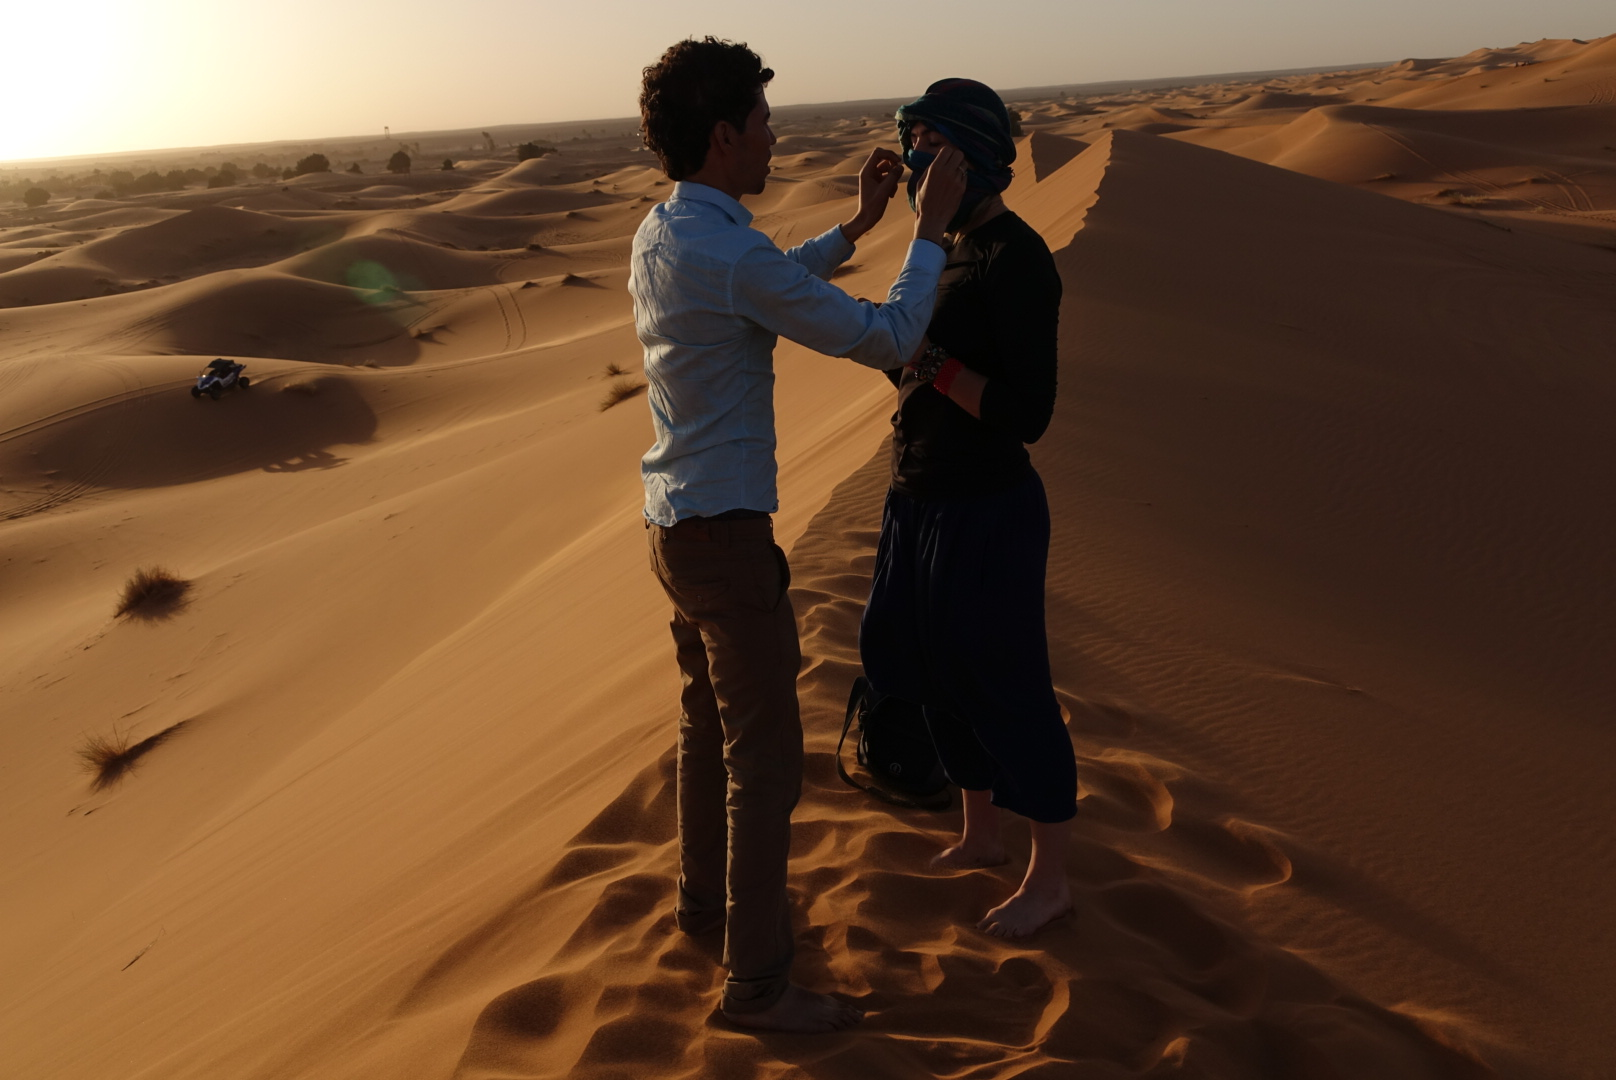 Mbarek fixing Brooke's scarf in-between takes before a sand storm.